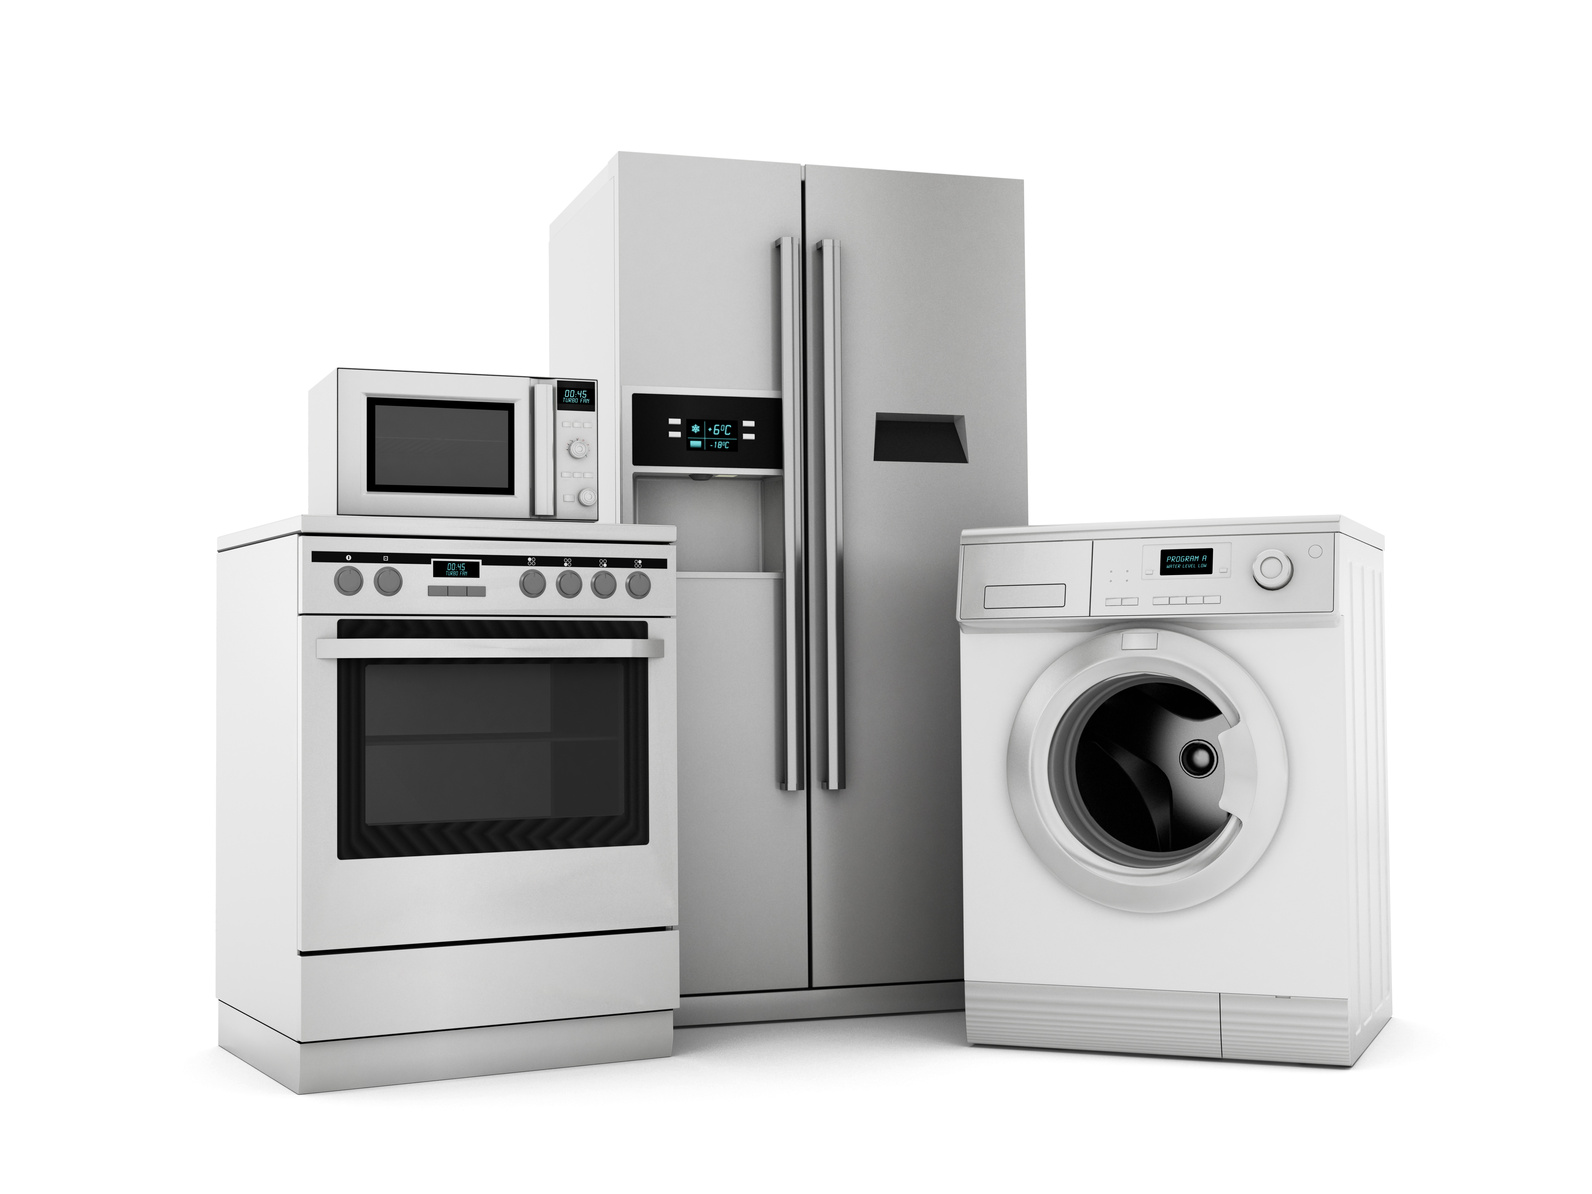 Environmental Concerns – Why We Need to Recycle Appliances